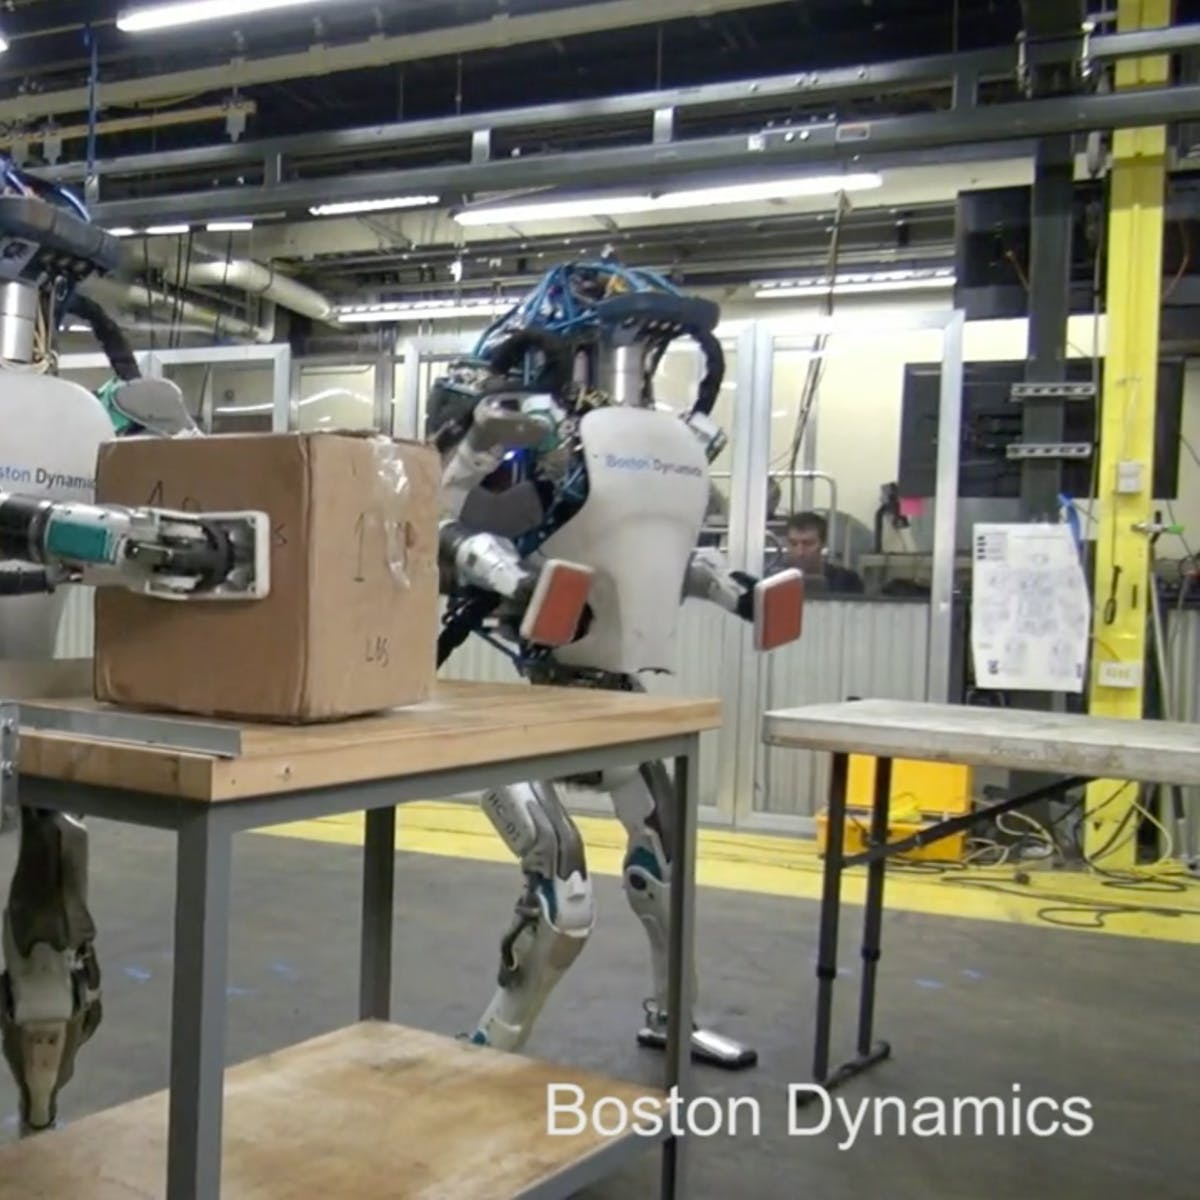 Robot Coworkers Are Coming, and They're Going to Really Mess With Your Head